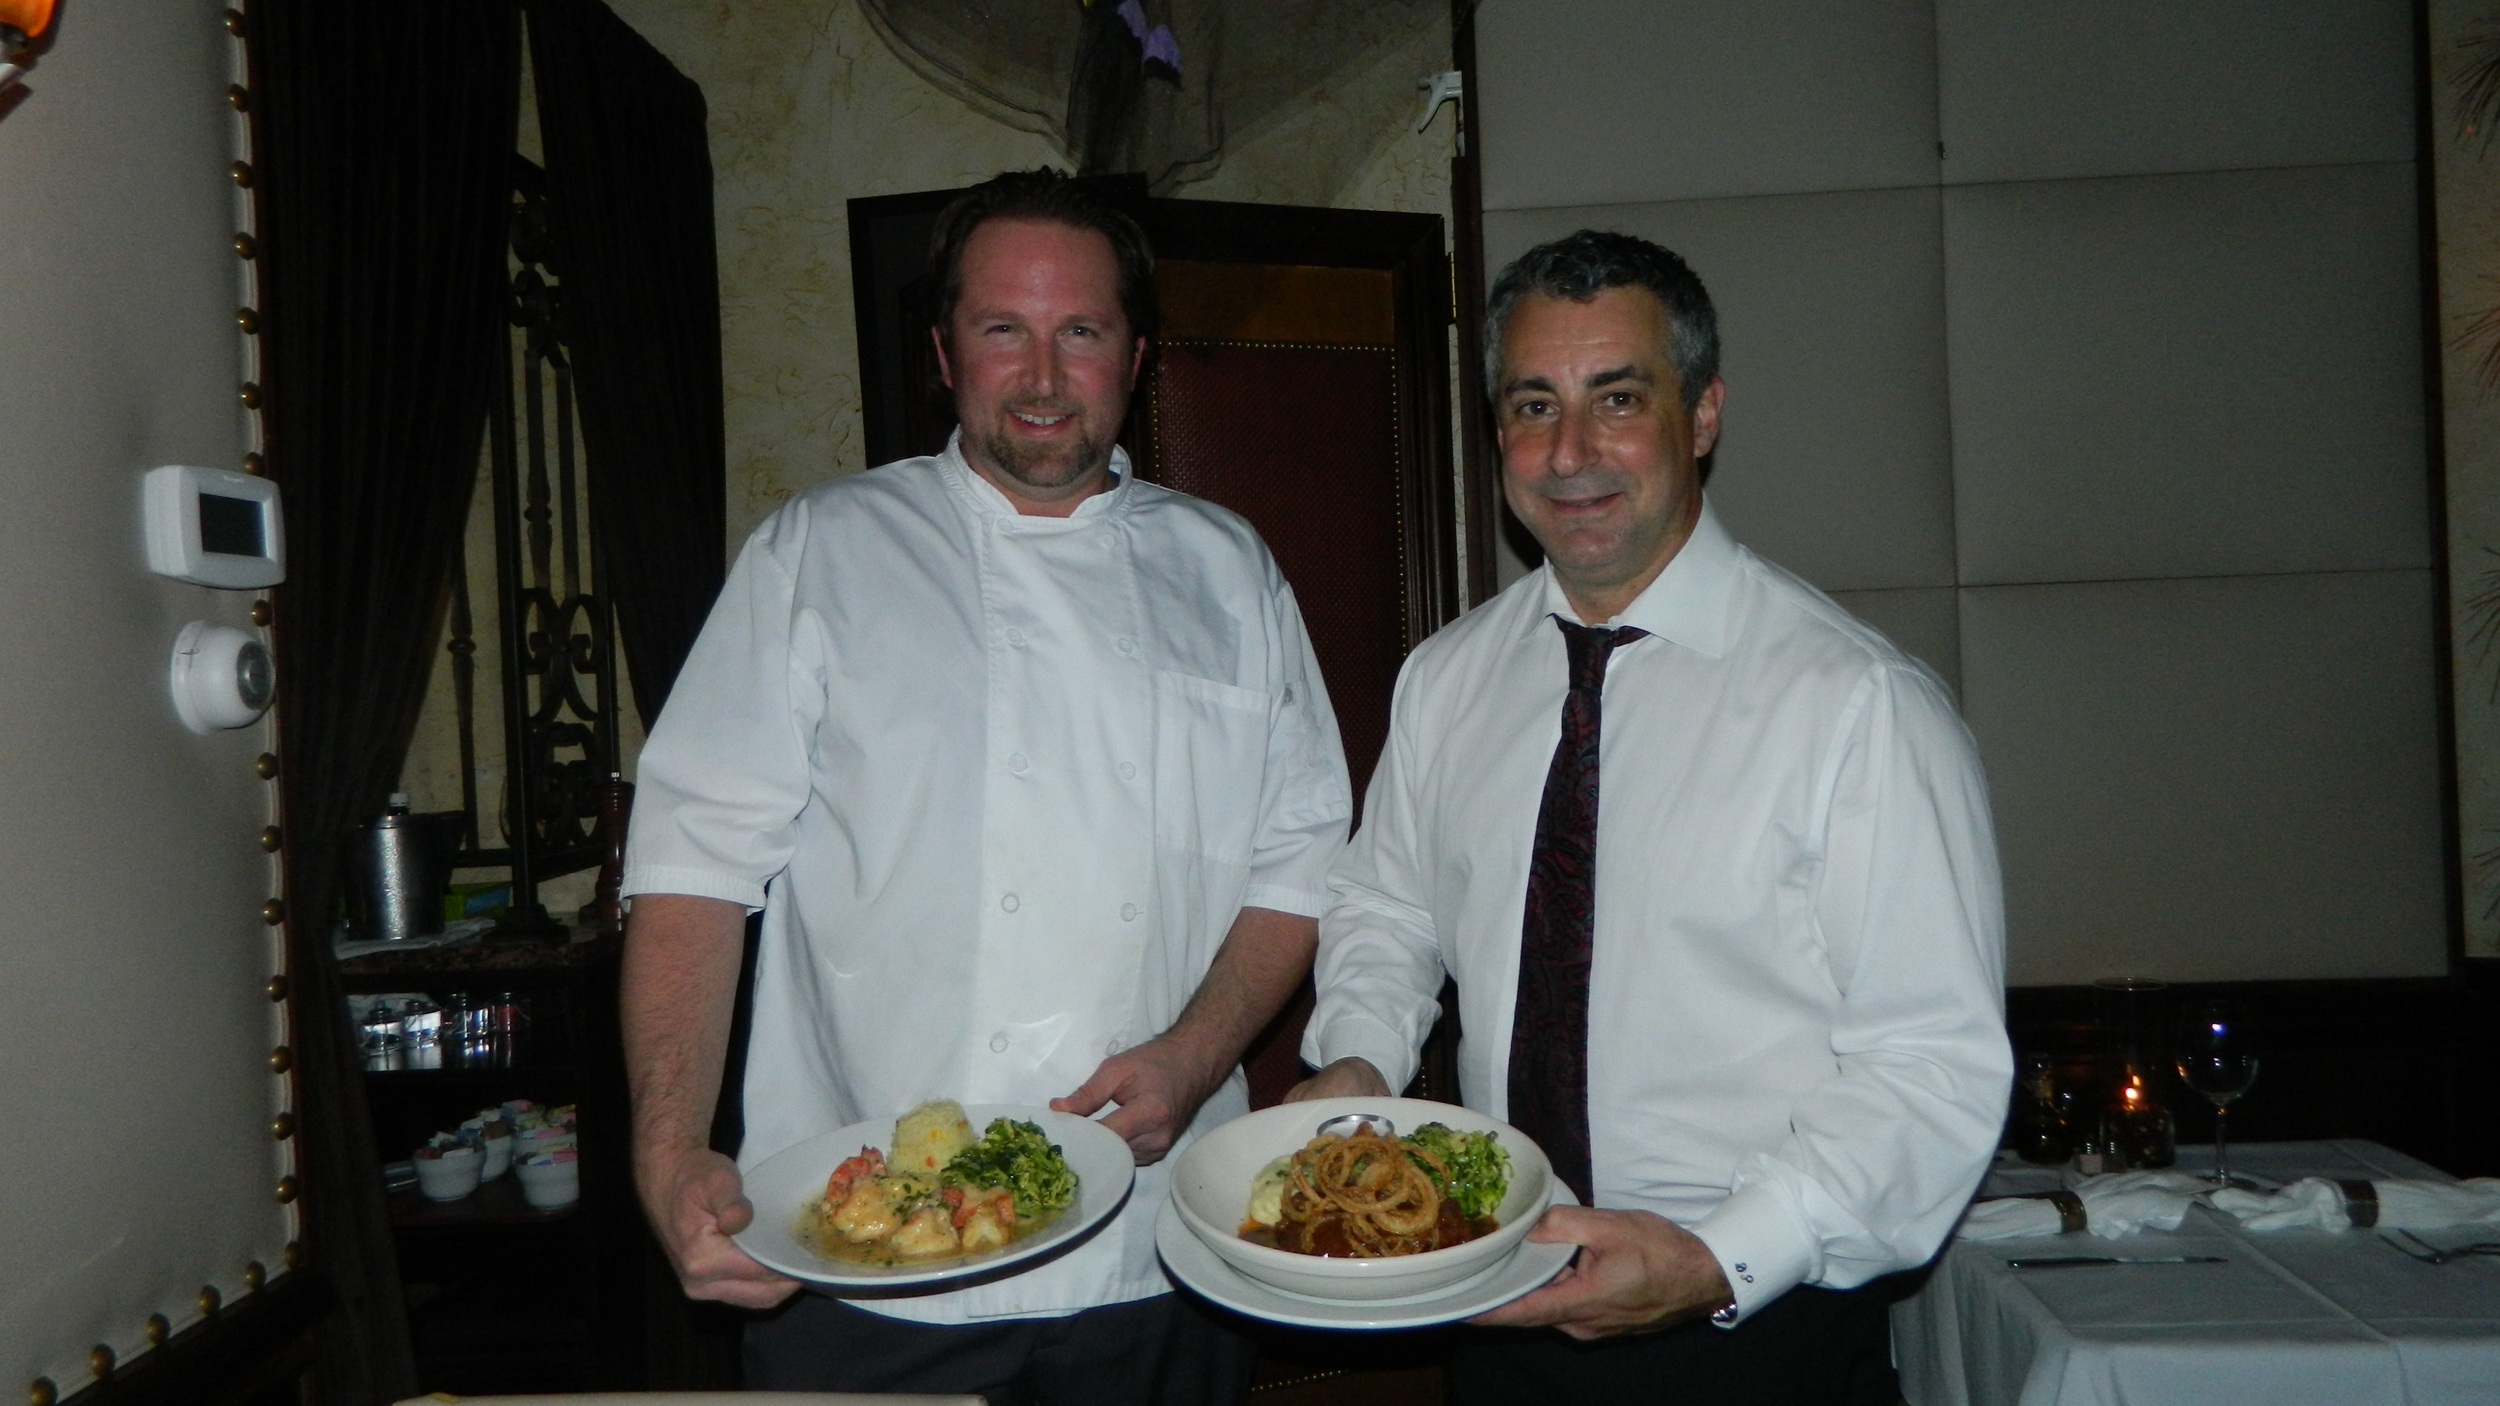 Chef Andrew Crabtree and owner Dean   Philippis   of Piccolo Restaurant in Huntington present shrimp scampi and braised boneless beef short ribs.